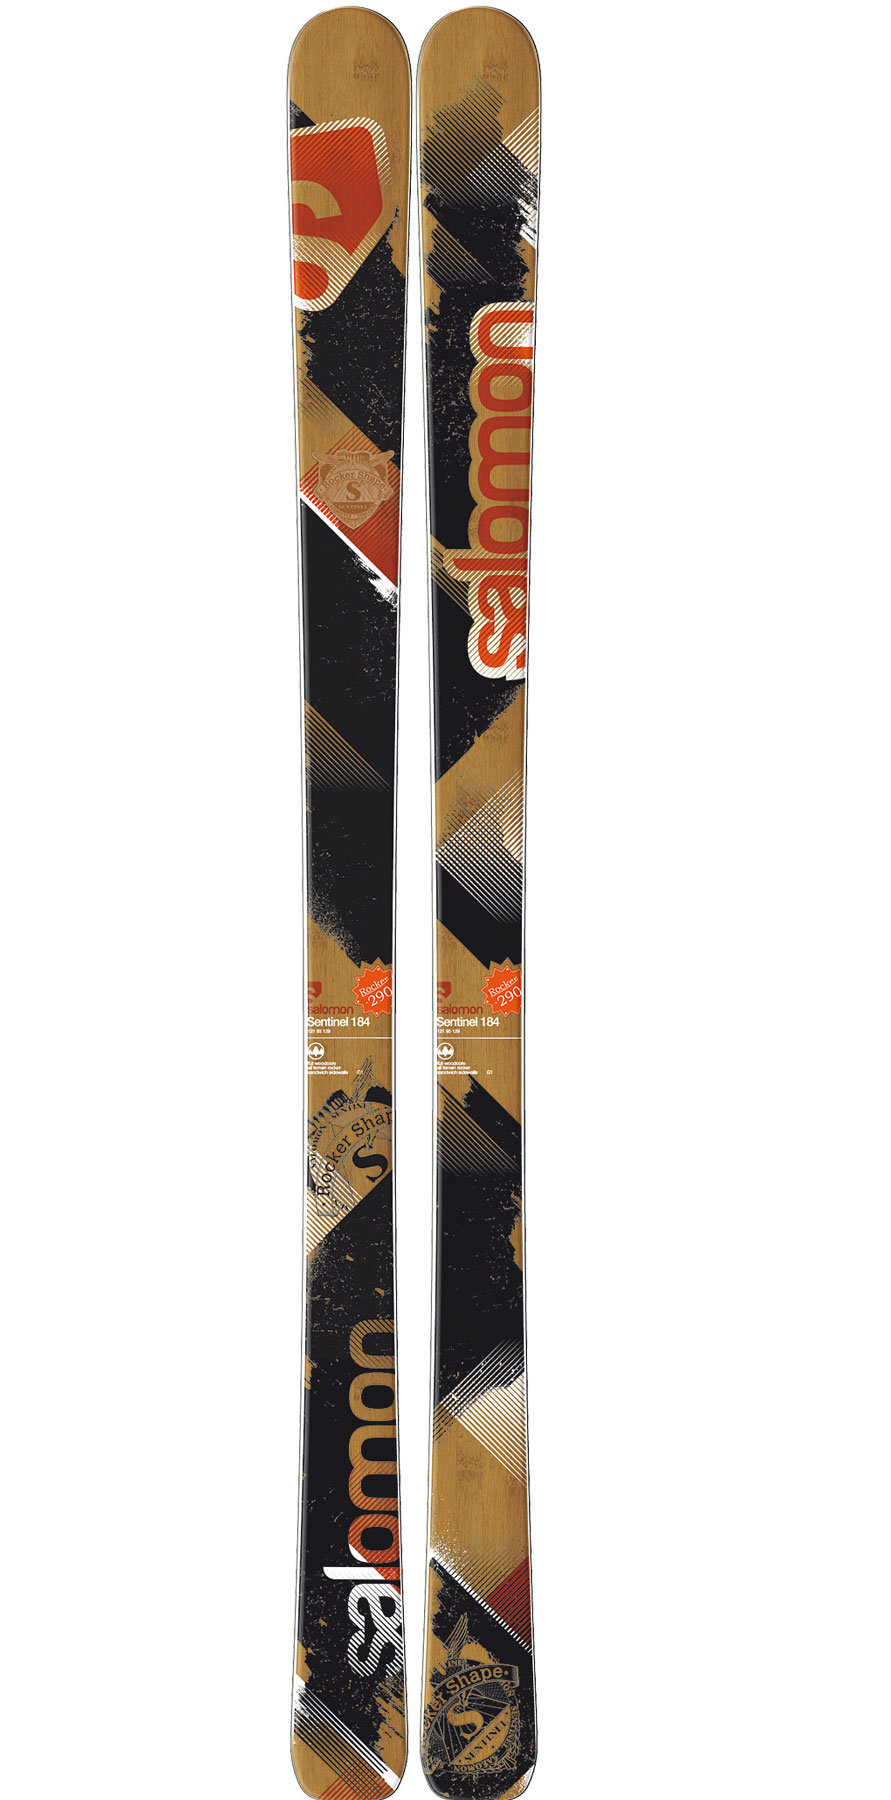 Ski Big Mountain and Backcountry.Key Features of the Salomon Sentinel Skis: Double Monocoque Edgy Monocoque Full Woodcore Wide edges Total edge reinforcement Edge armor Semi twin tip tail Pulse Pad All Terrain Rocker Sidecut: 130/ 101/ 120 (182cm) Radius: 20.6 (164), 23.1 (173), 25.9 (182), 28.7 (191) - $424.95